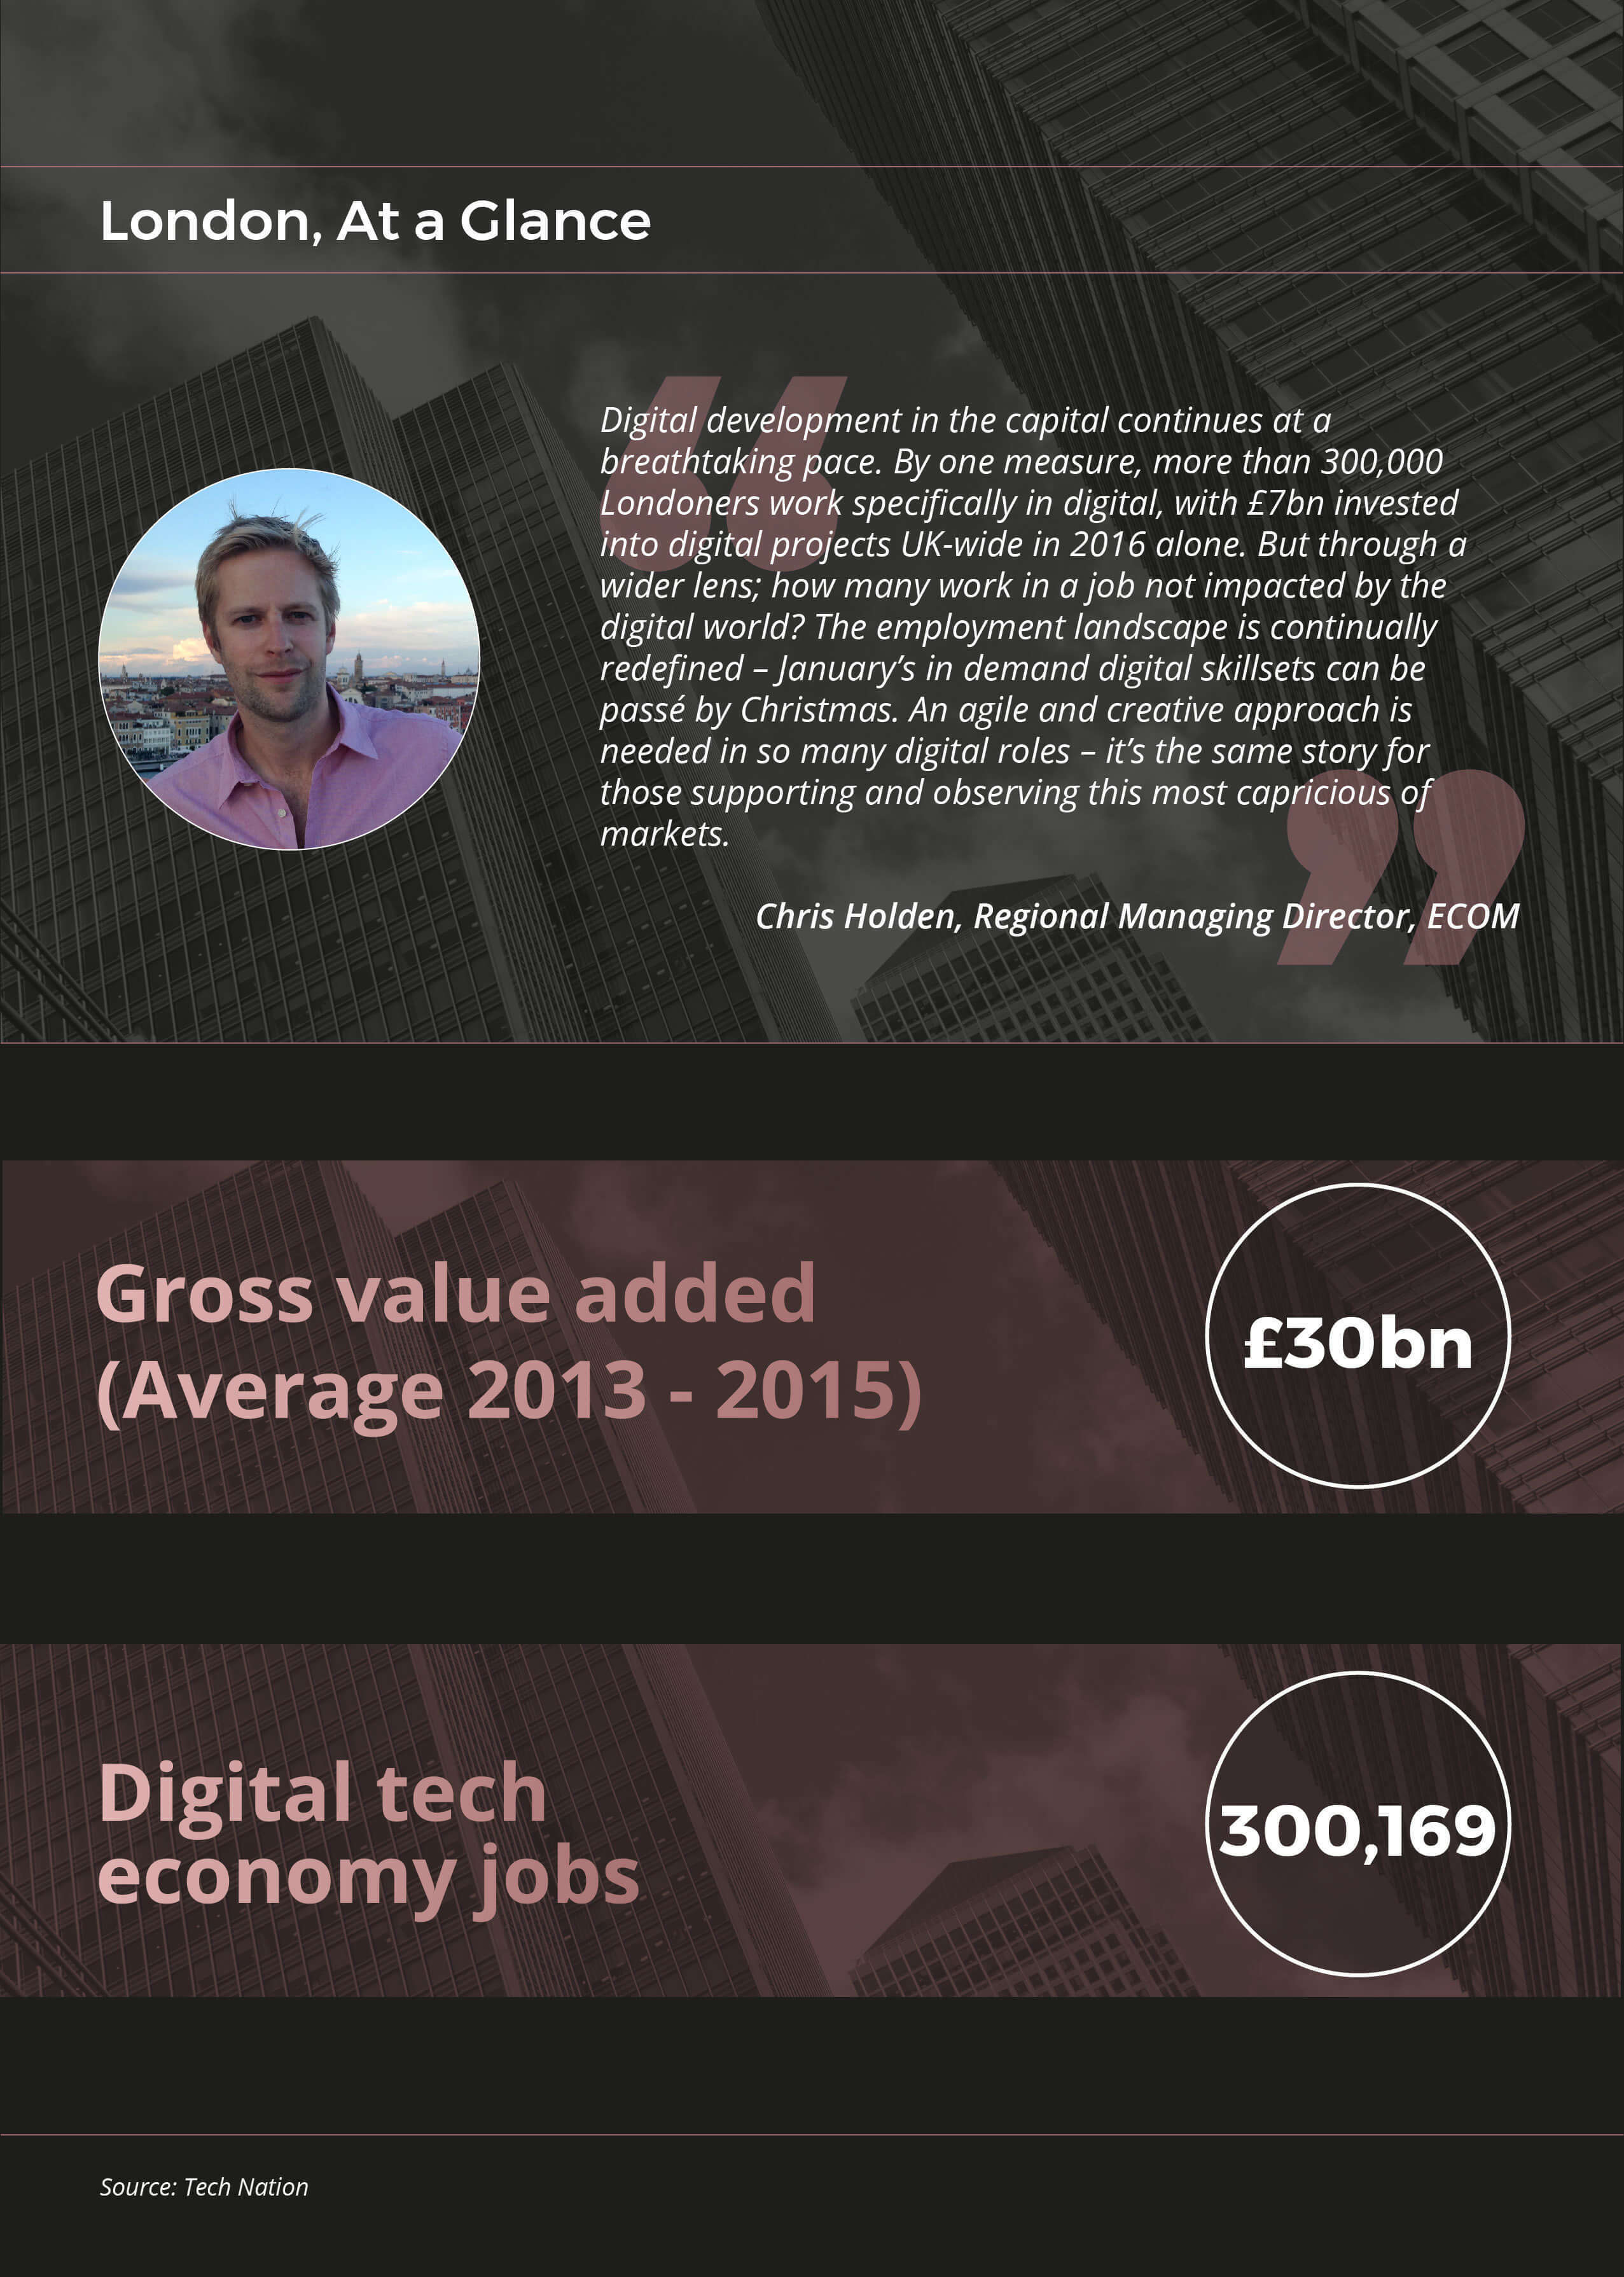 The Digital Economy - London At a Glance